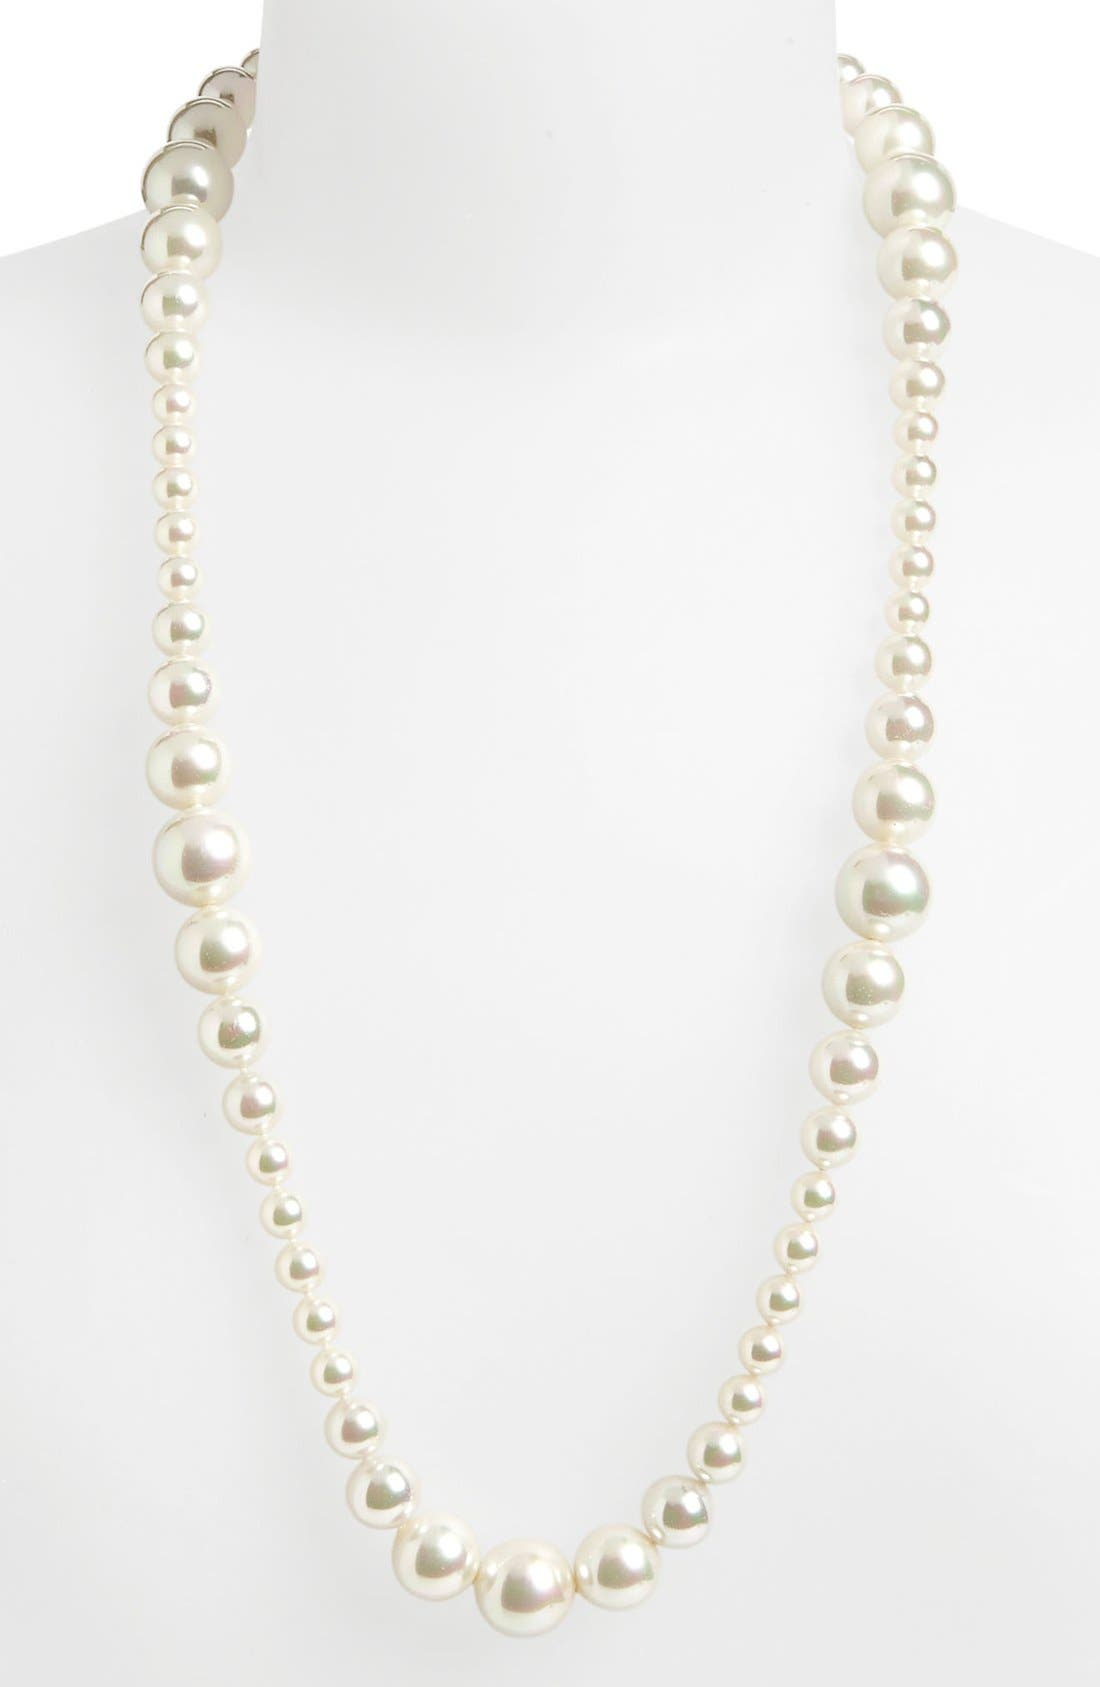 Main Image - Majorica 'Divina' Graduated Pearl Necklace